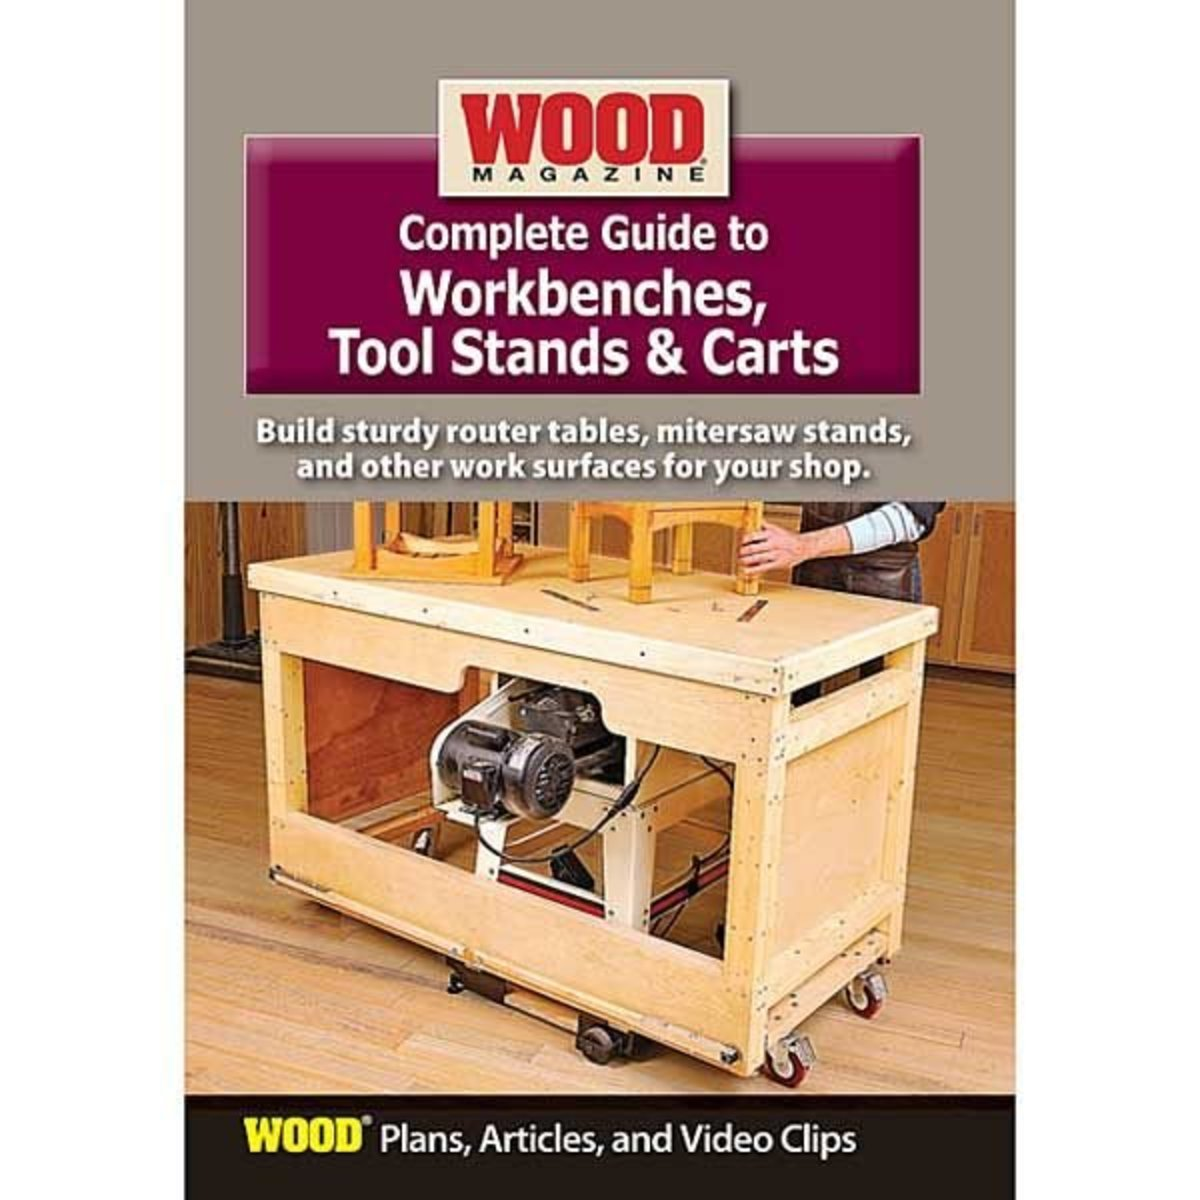 Complete guide to workbenches tool stands carts dvd view a larger image of complete guide to workbenches tool stands carts dvd wood magazine greentooth Gallery